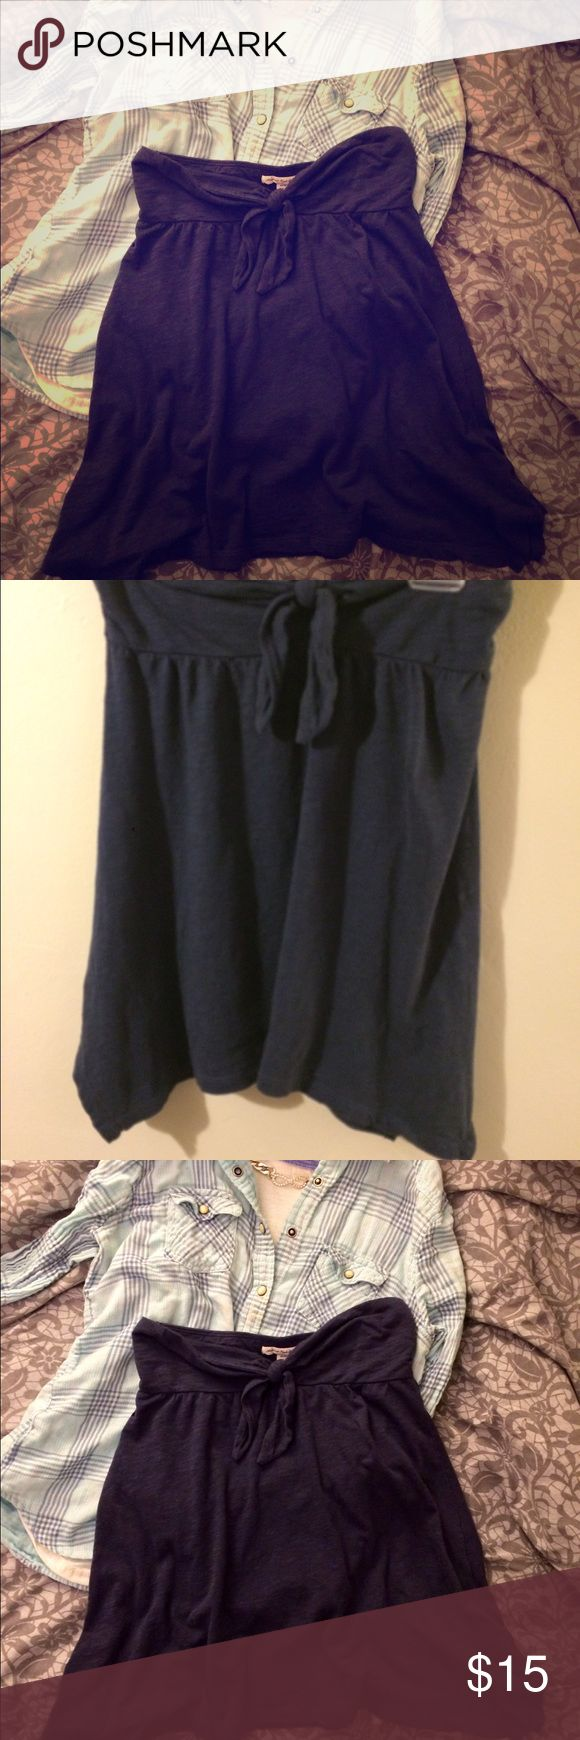 American Eagle Outfitters Knotted Skirt Soft Blue flowing skirt size XS in great condition. American Eagle Outfitters Skirts